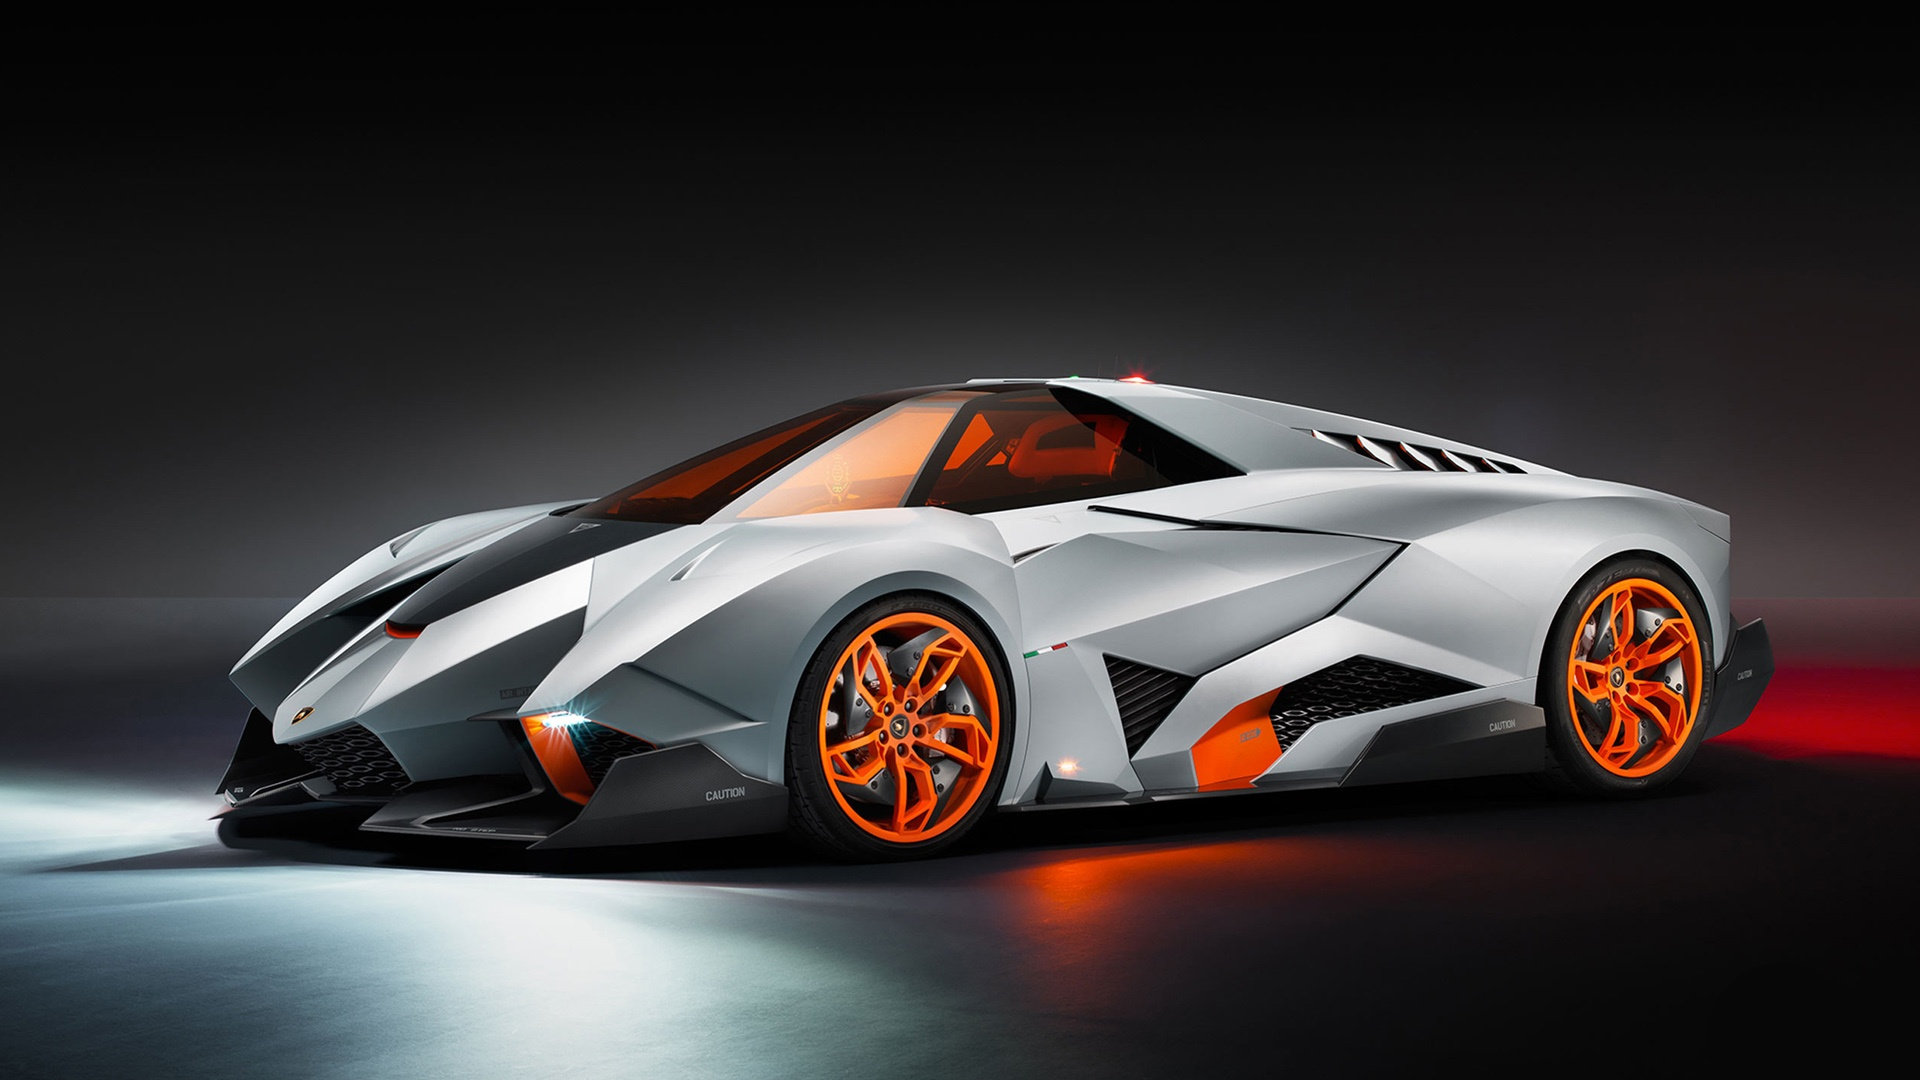 Cool-car-hd-1080p-For-Your-Desktop-with-car-hd-1080p-Download-HD-wallpaper-wp3604275